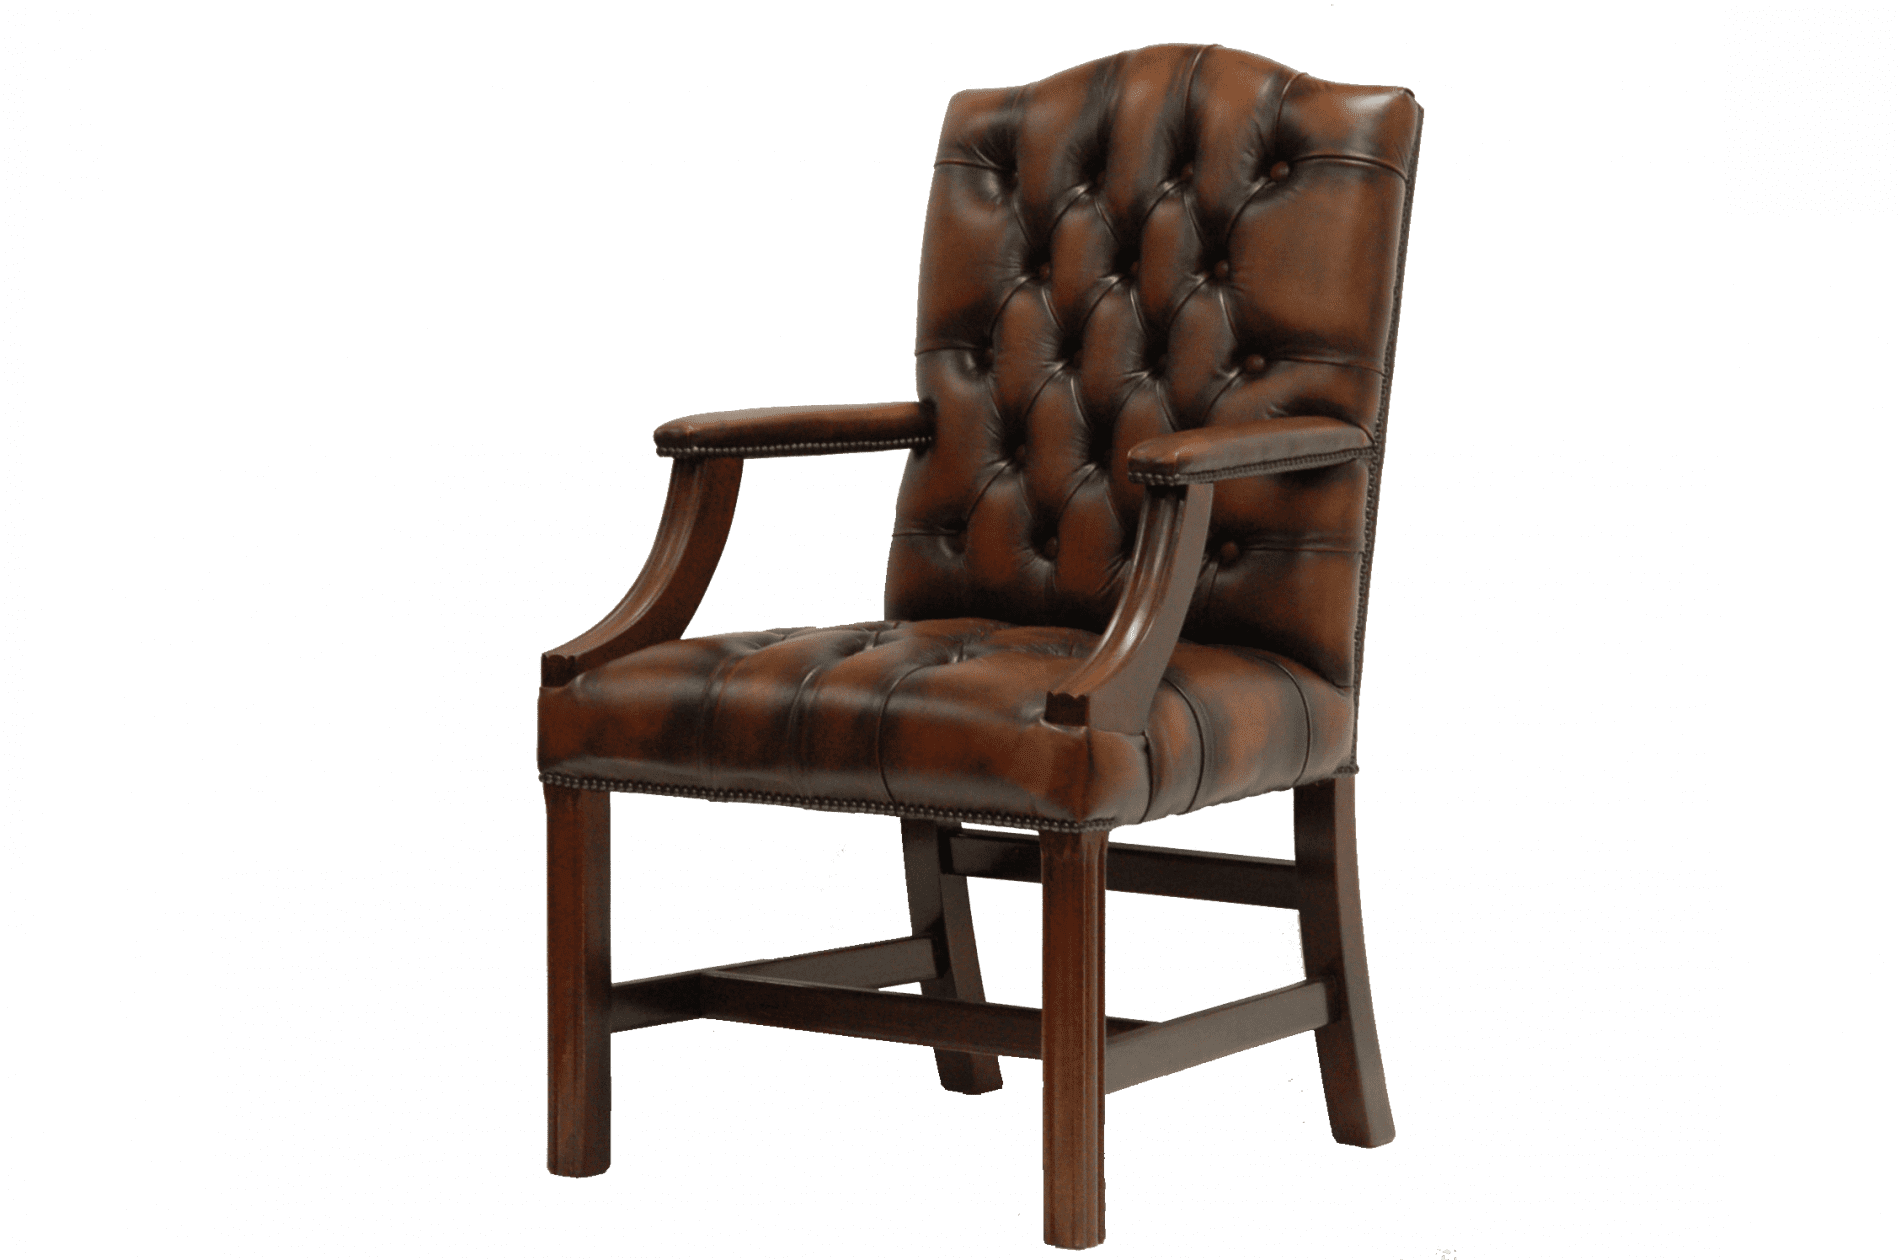 Gainsborough-stand-chair-met-armleuningen-ant-tobacco-zijaanzicht-rechts